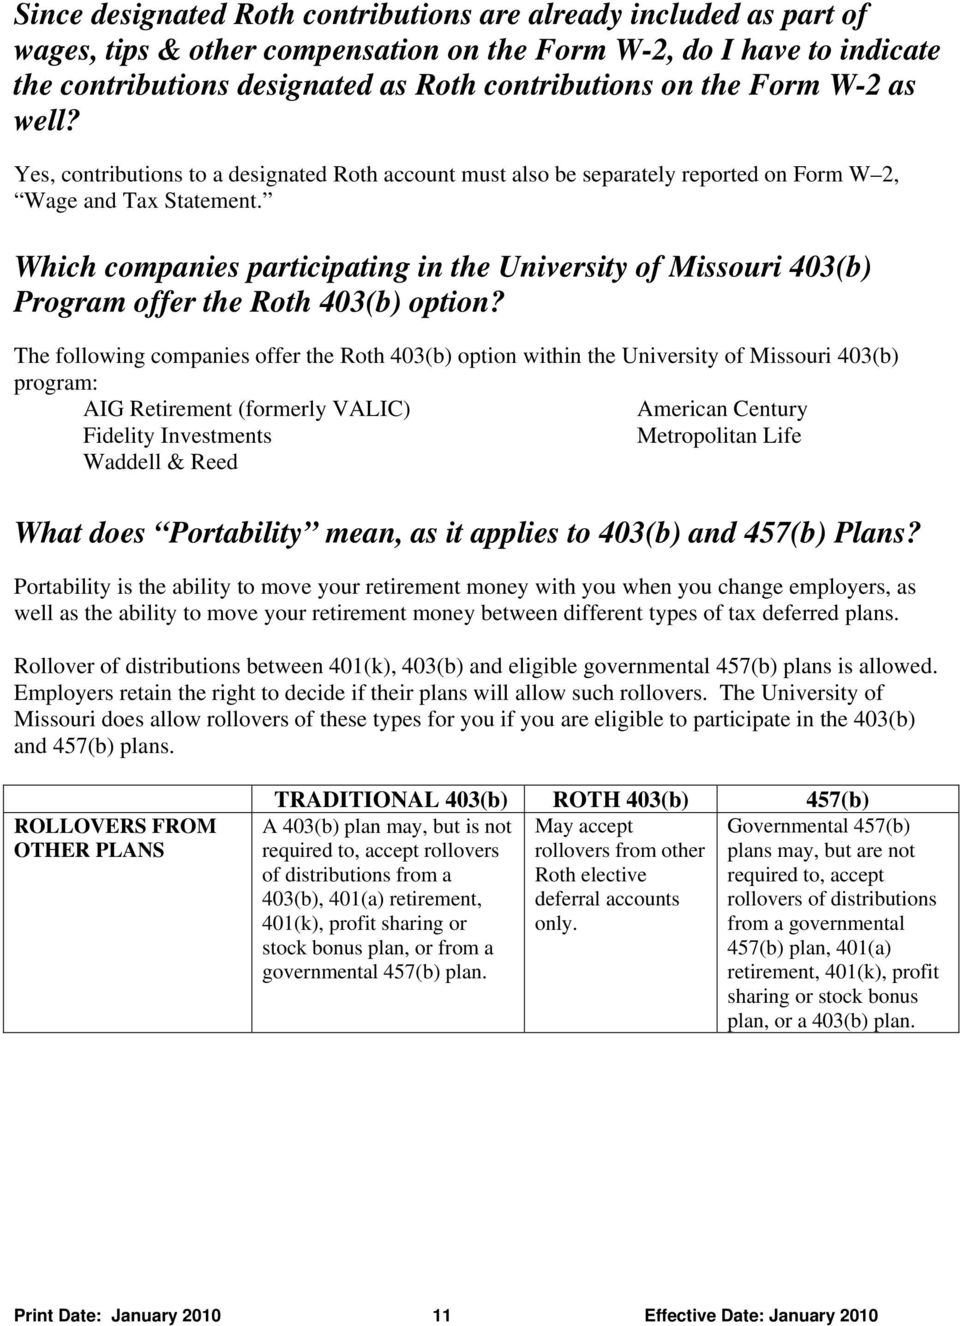 Which companies participating in the University of Missouri 403(b) Program offer the Roth 403(b) option?